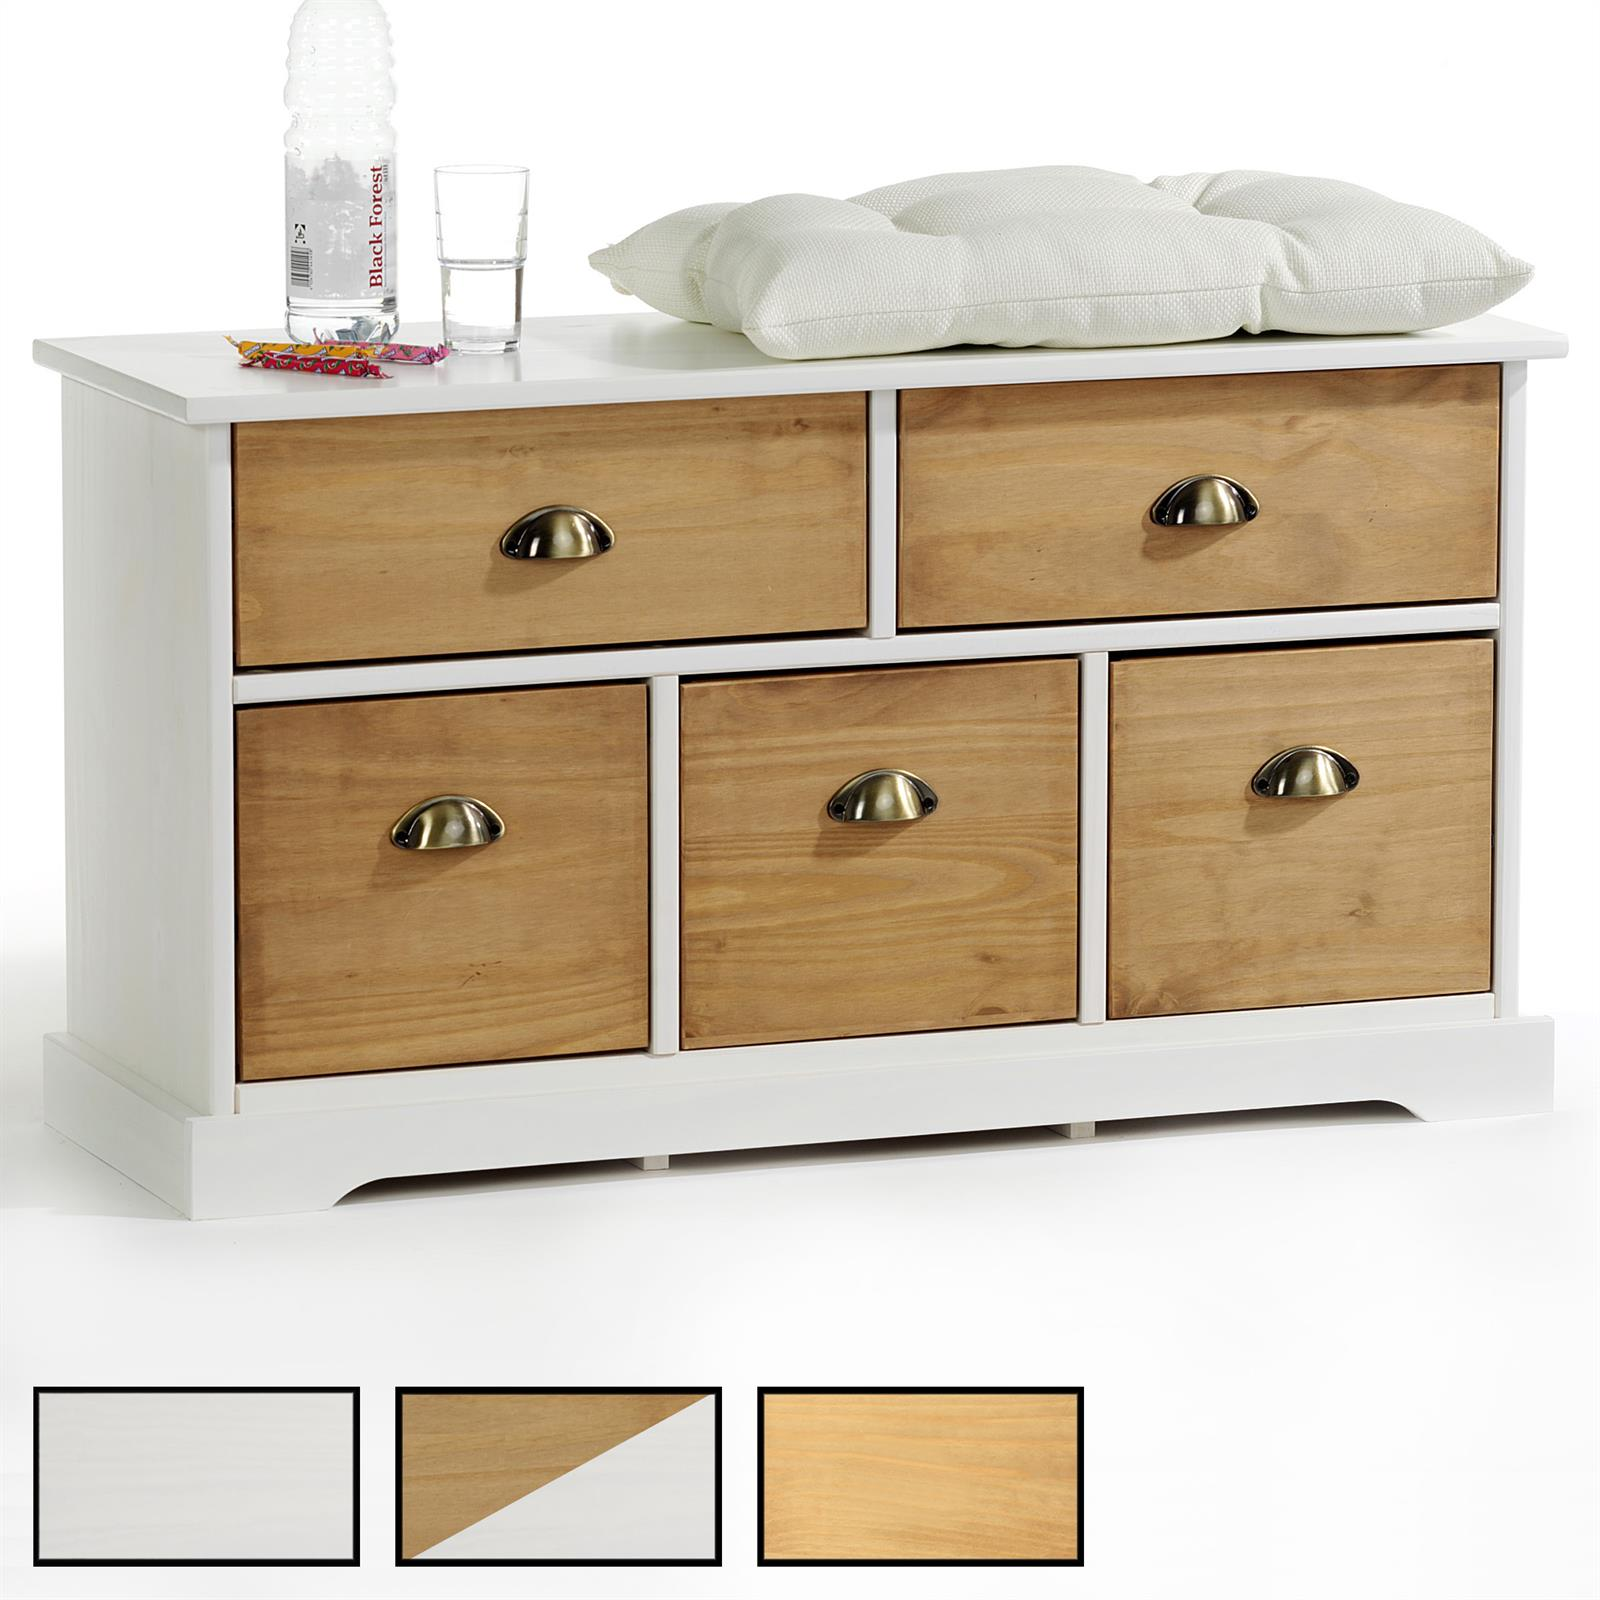 banc en pin nancy 2 5 tiroirs 3 coloris disponibles mobil meubles. Black Bedroom Furniture Sets. Home Design Ideas